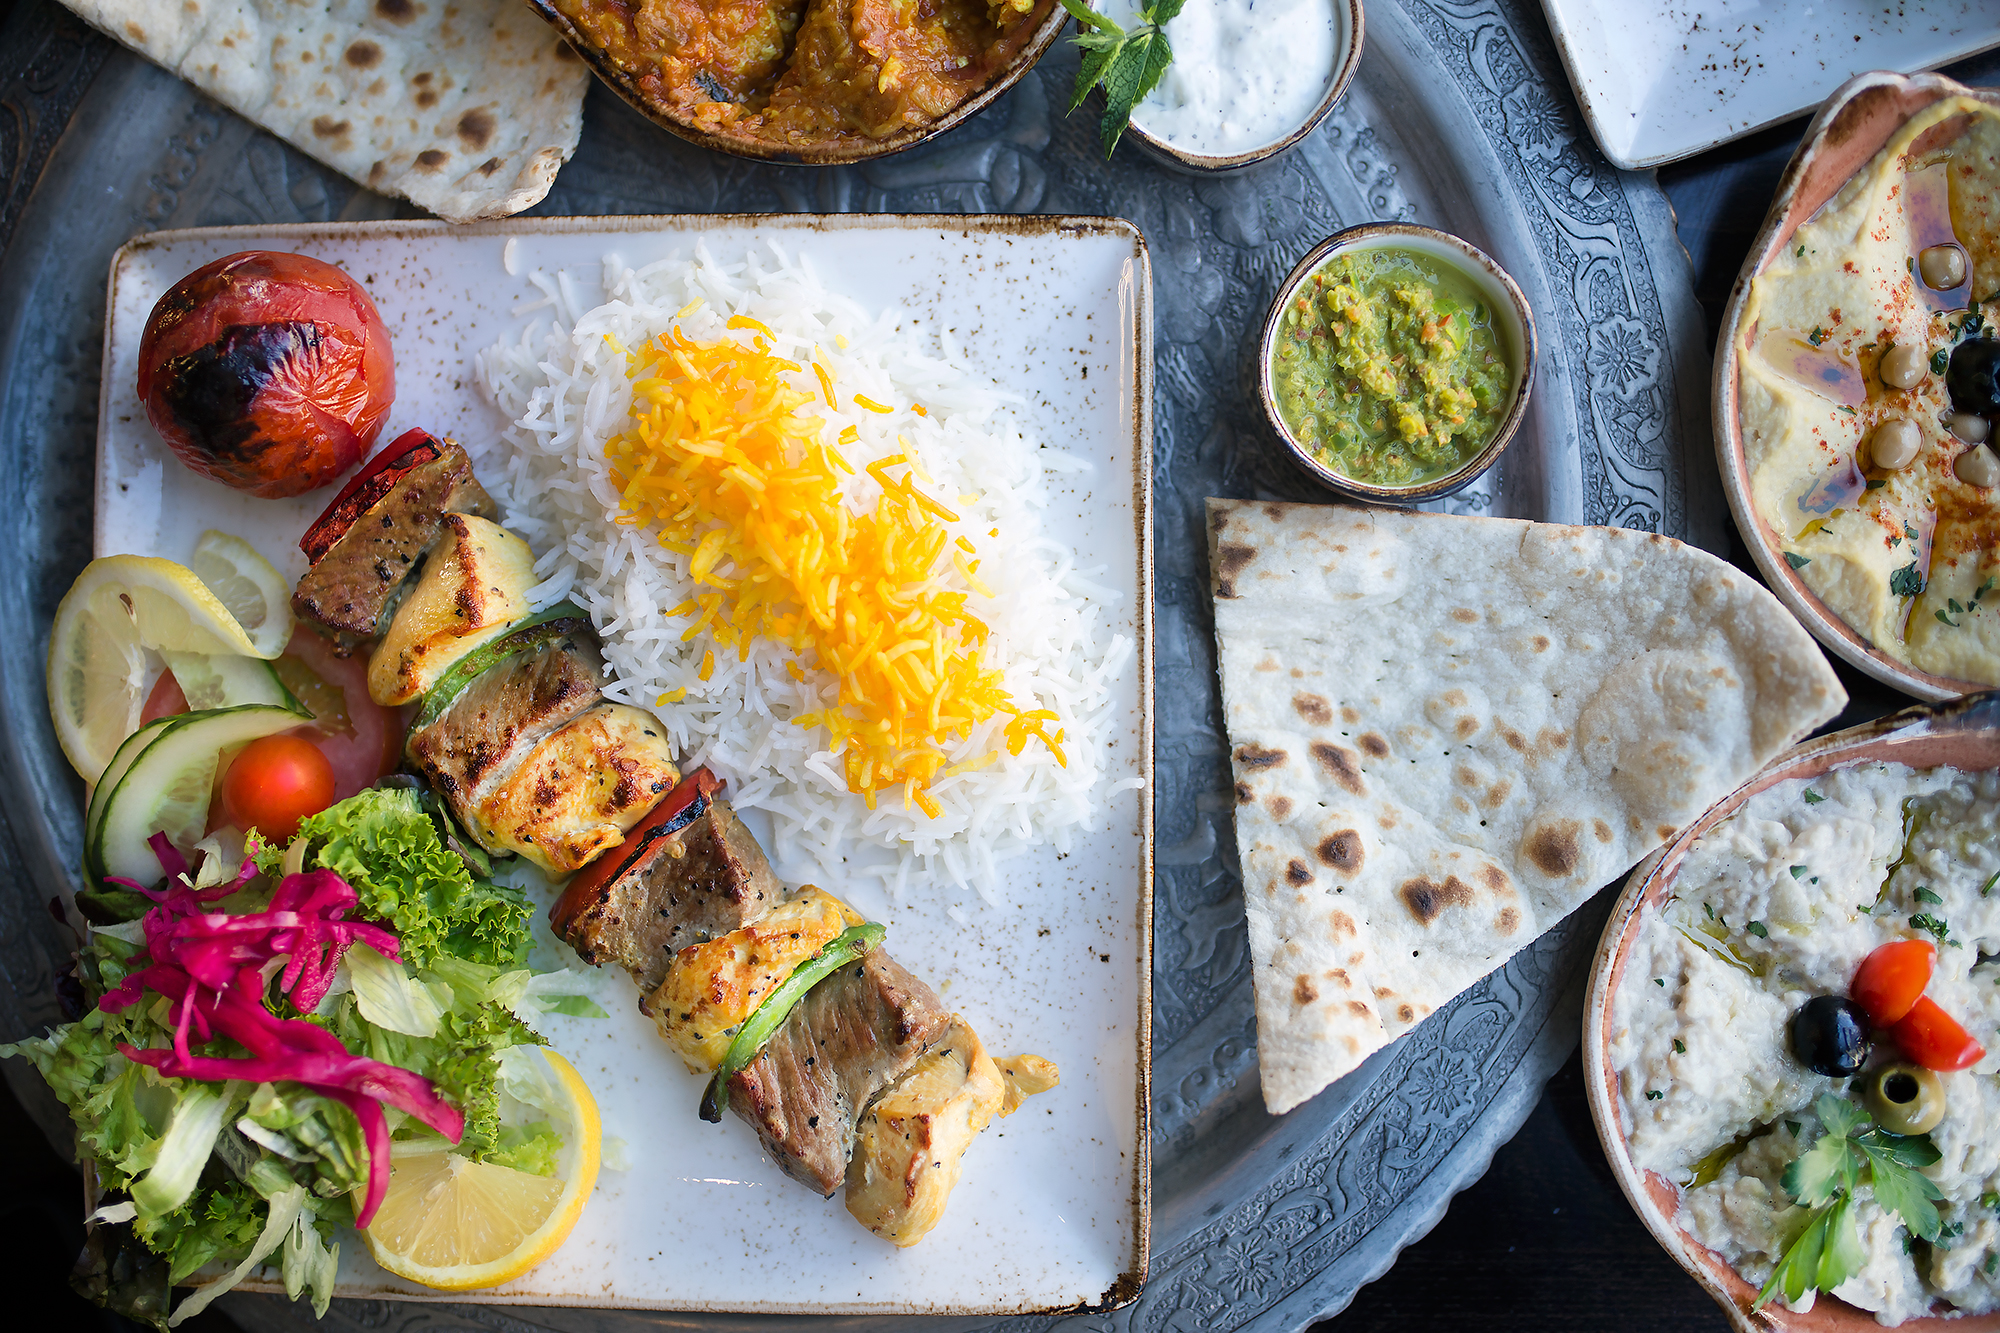 SHIRAZ PERSIAN CUISINE - 10% OFF WHEN YOU SHOW PAVILION CARD AT END OF YOUR MEAL